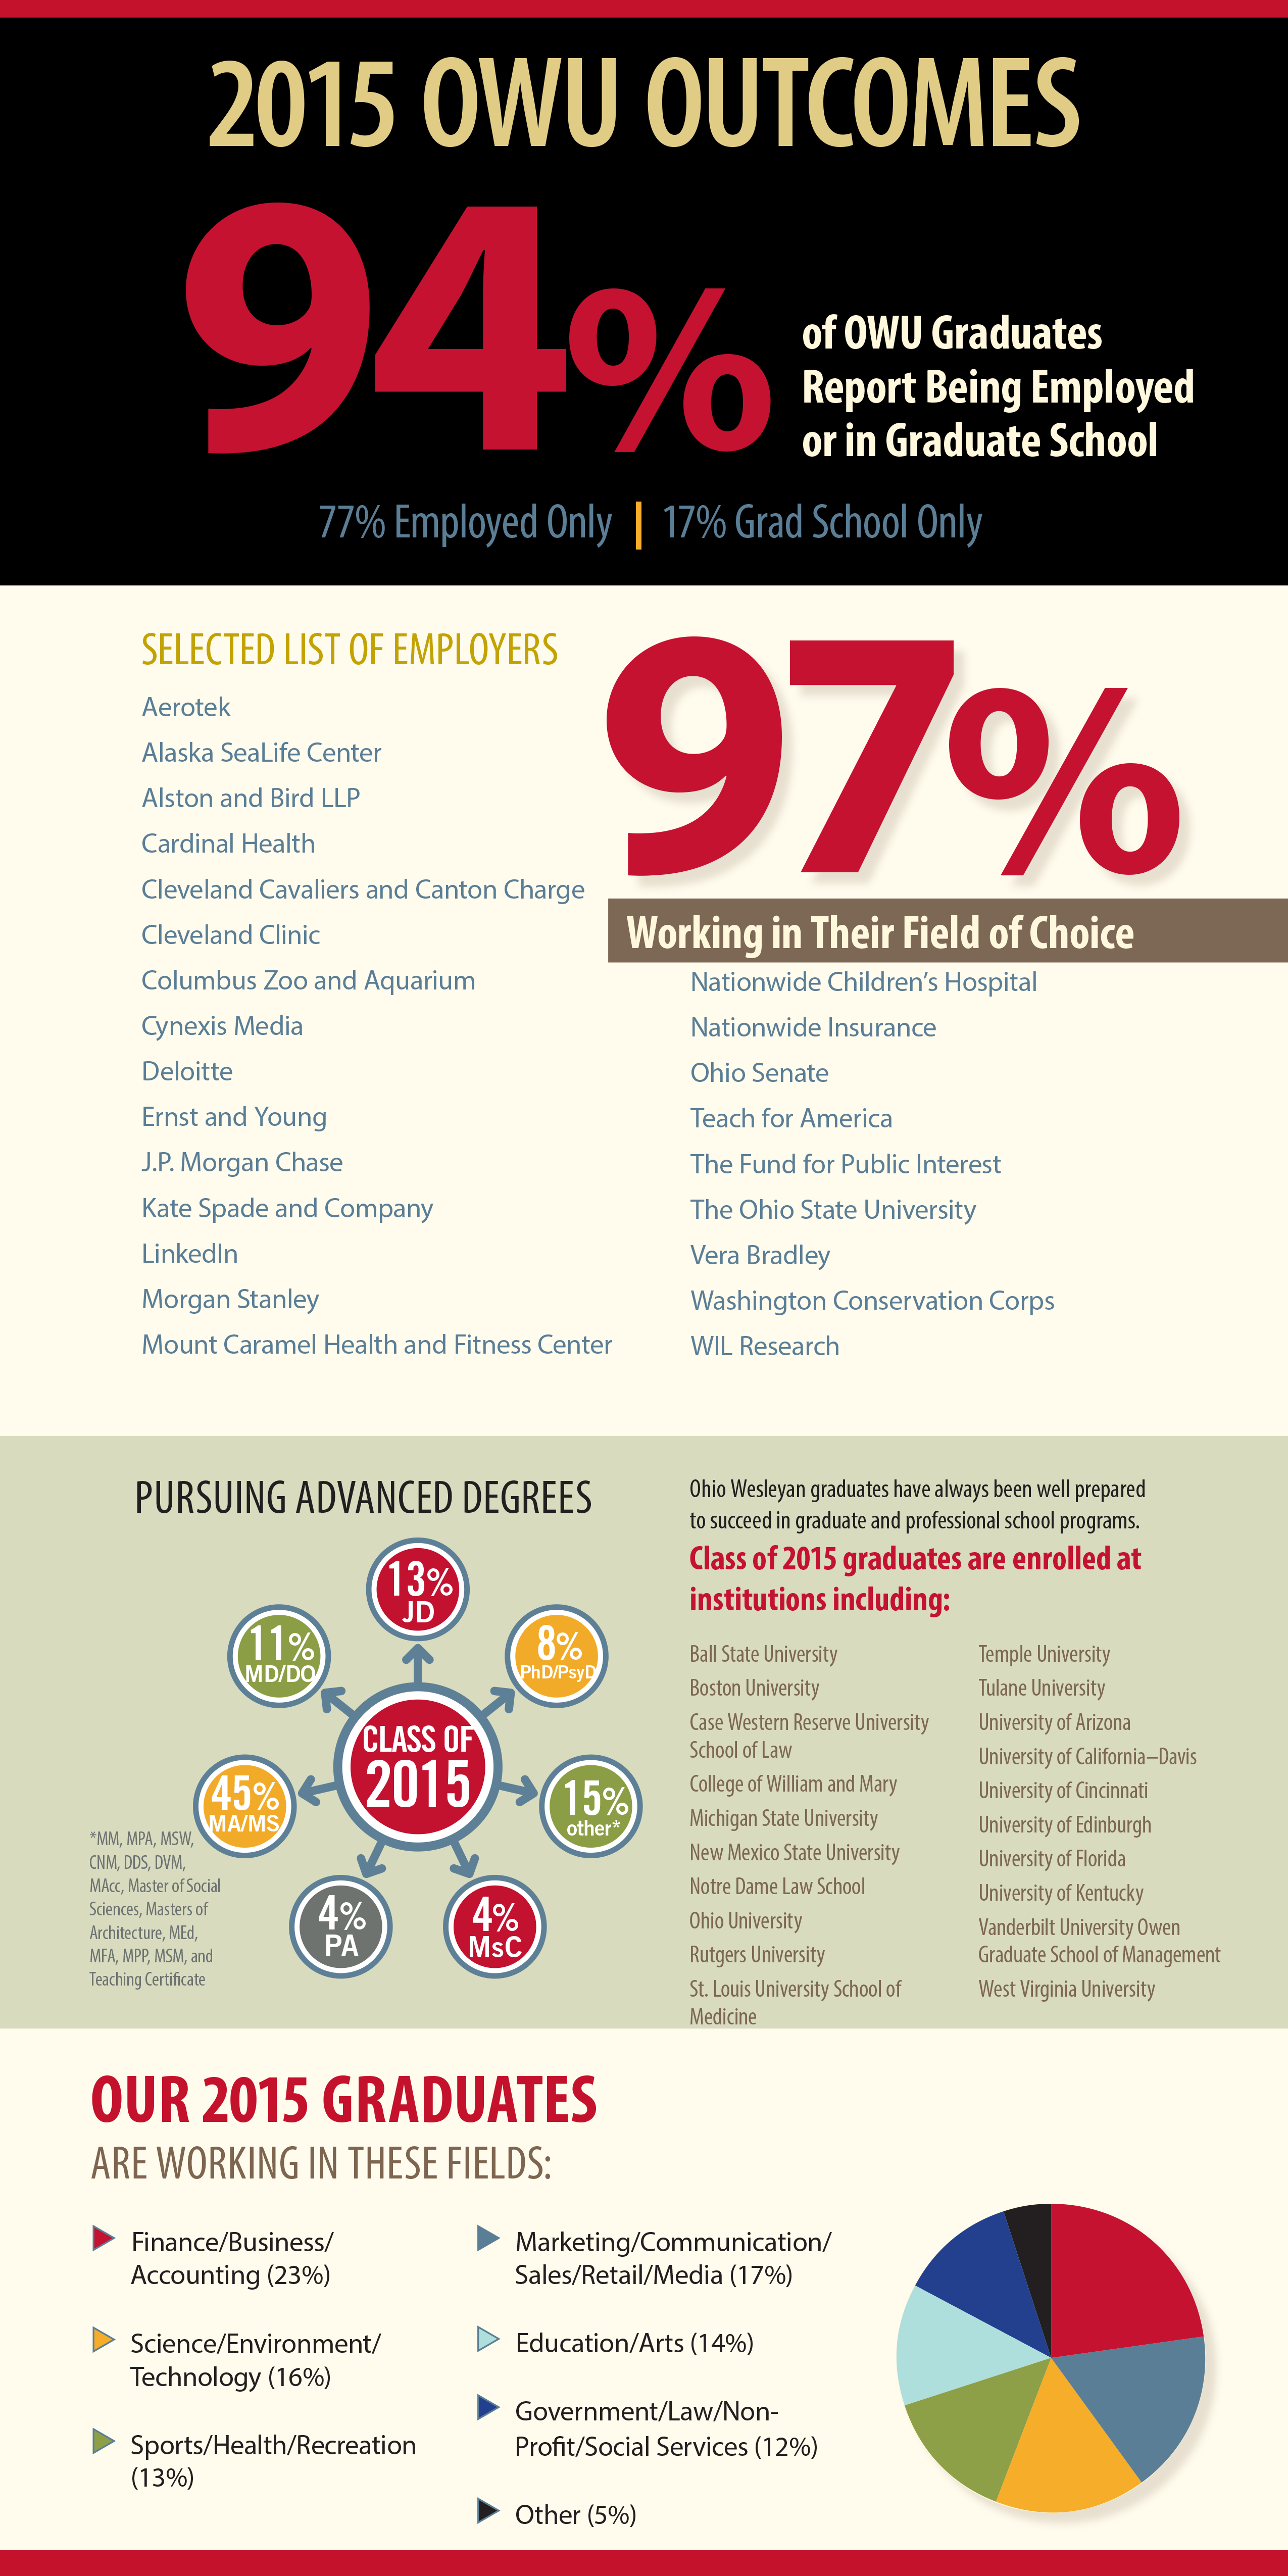 2015 Outcomes Report Infographic